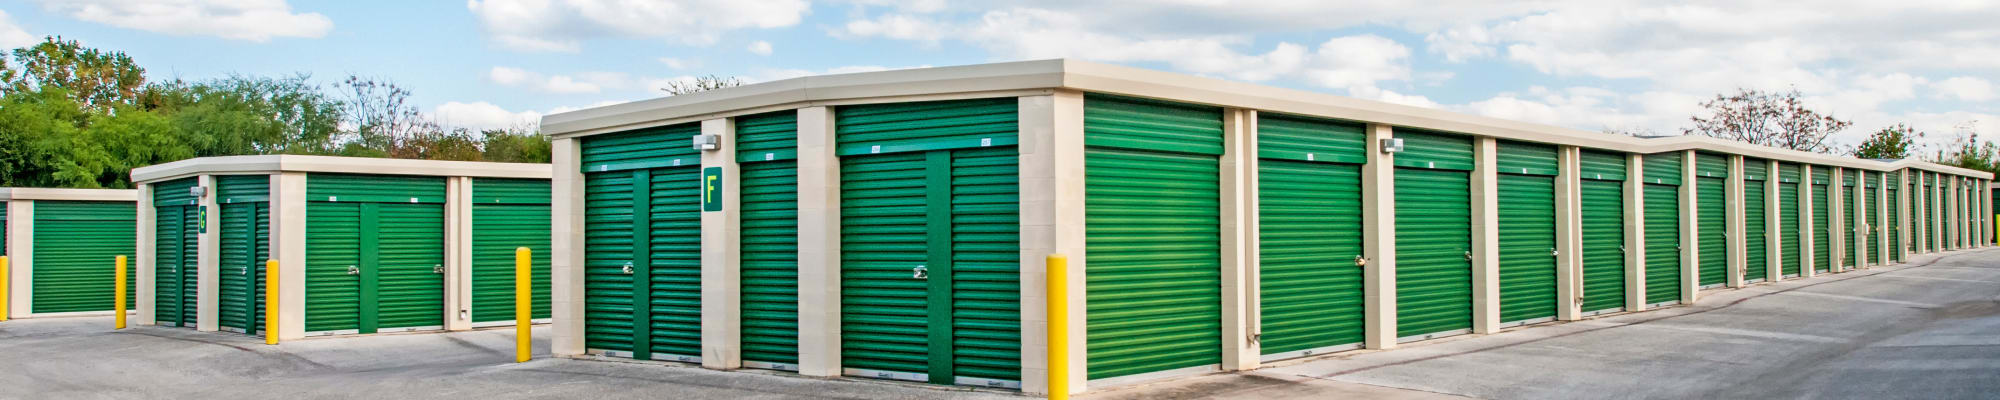 Reviews for Lockaway Storage in San Antonio, Texas